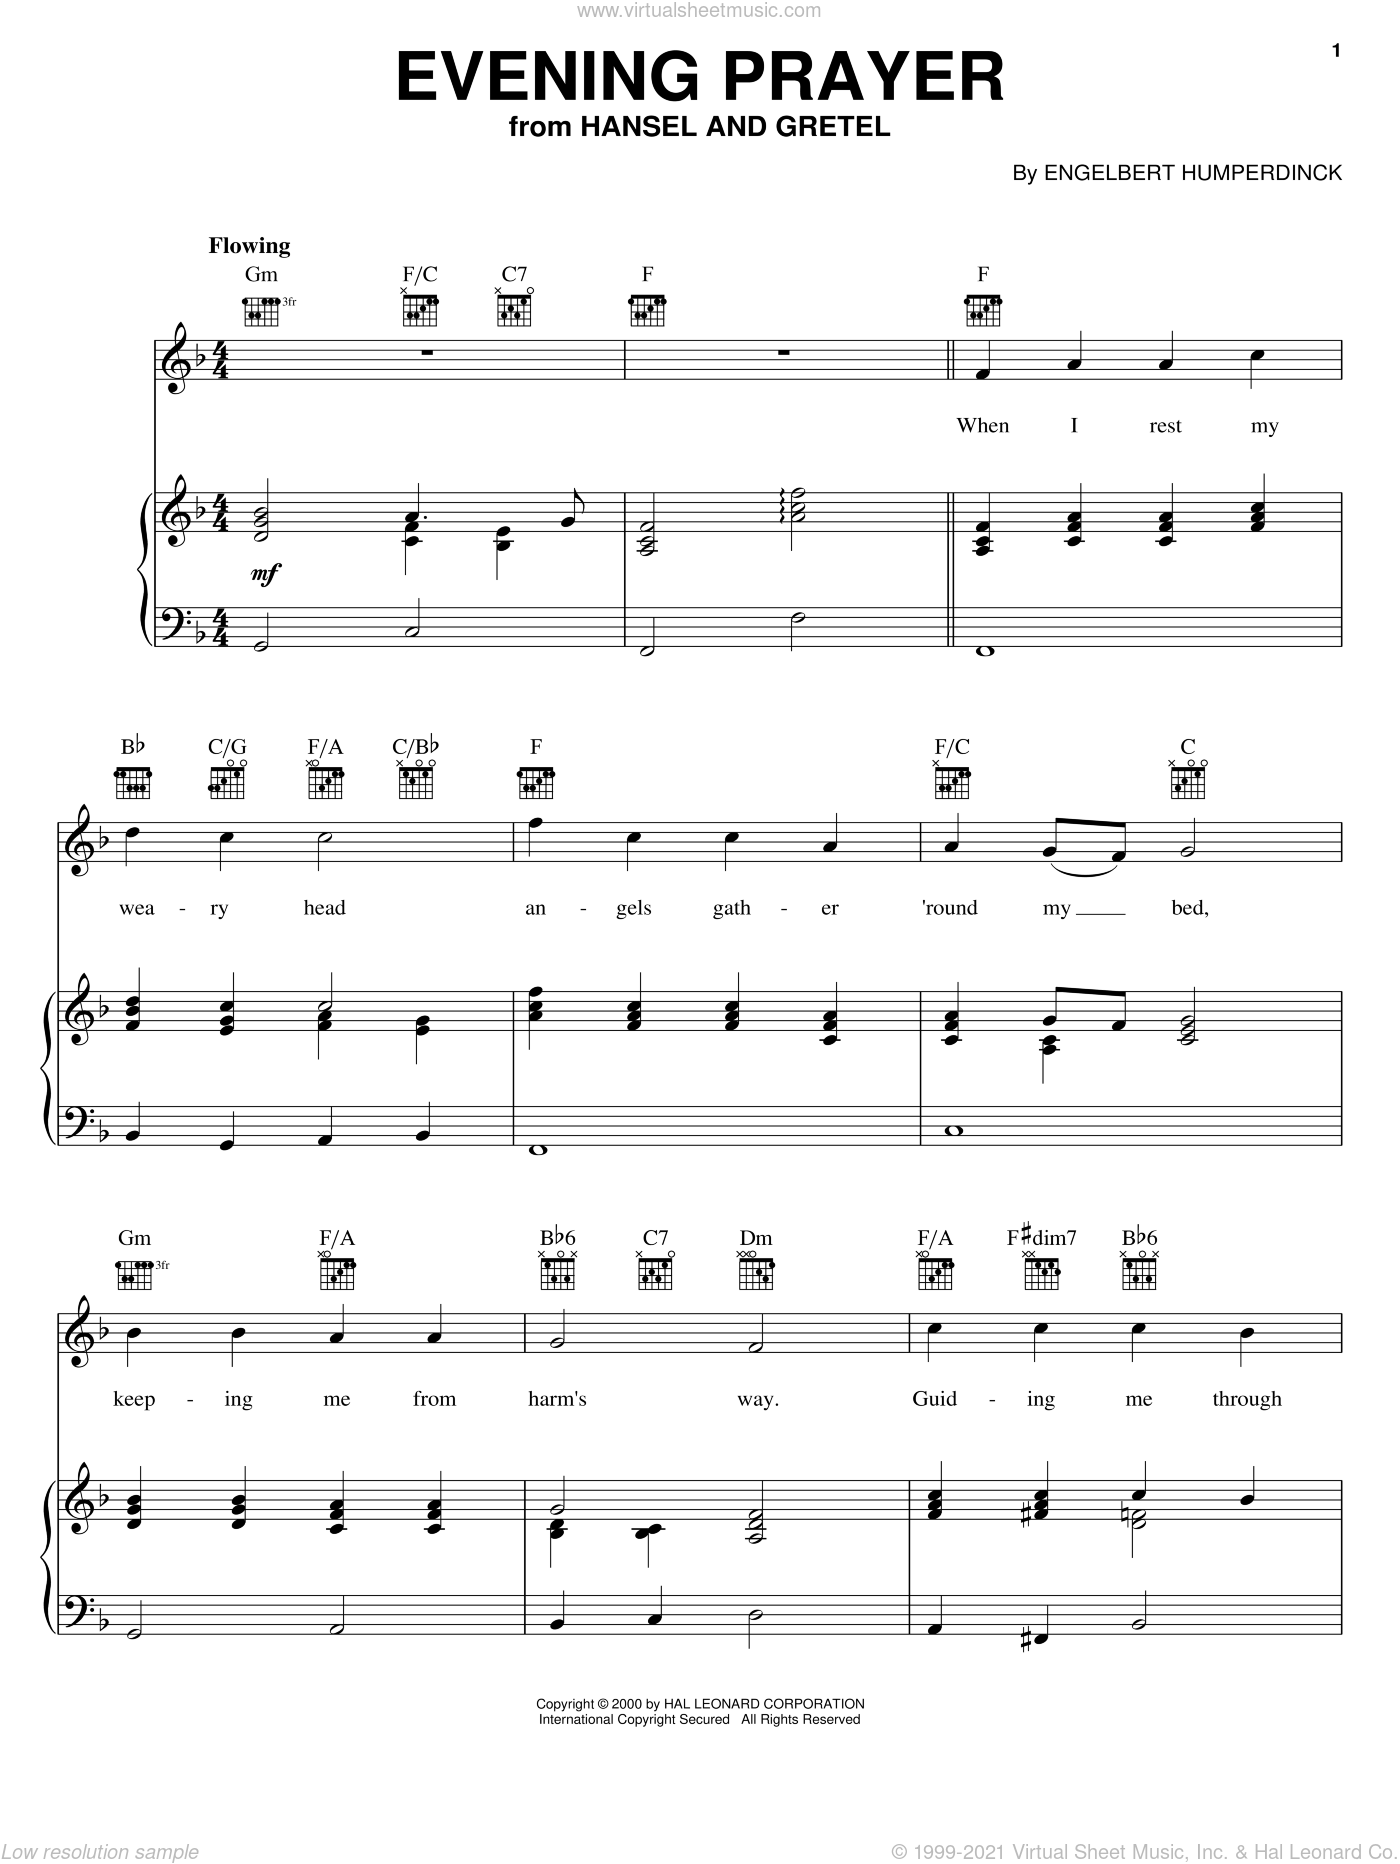 Evening Prayer sheet music for voice, piano or guitar by Engelbert Humperdinck